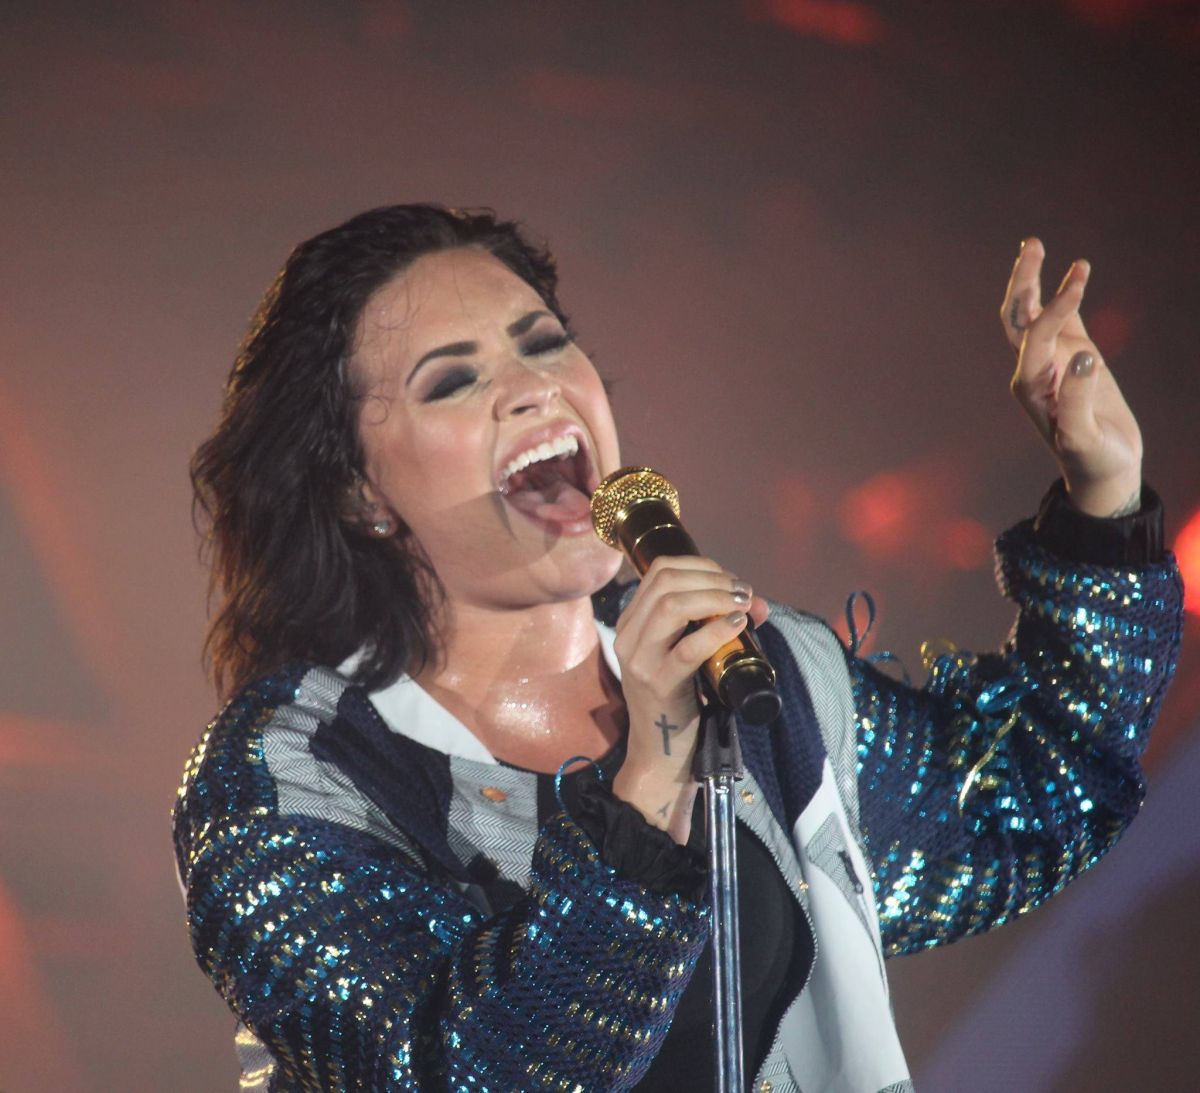 DEMI LOVATO Performs at Yan Beatfestival in Vietnam